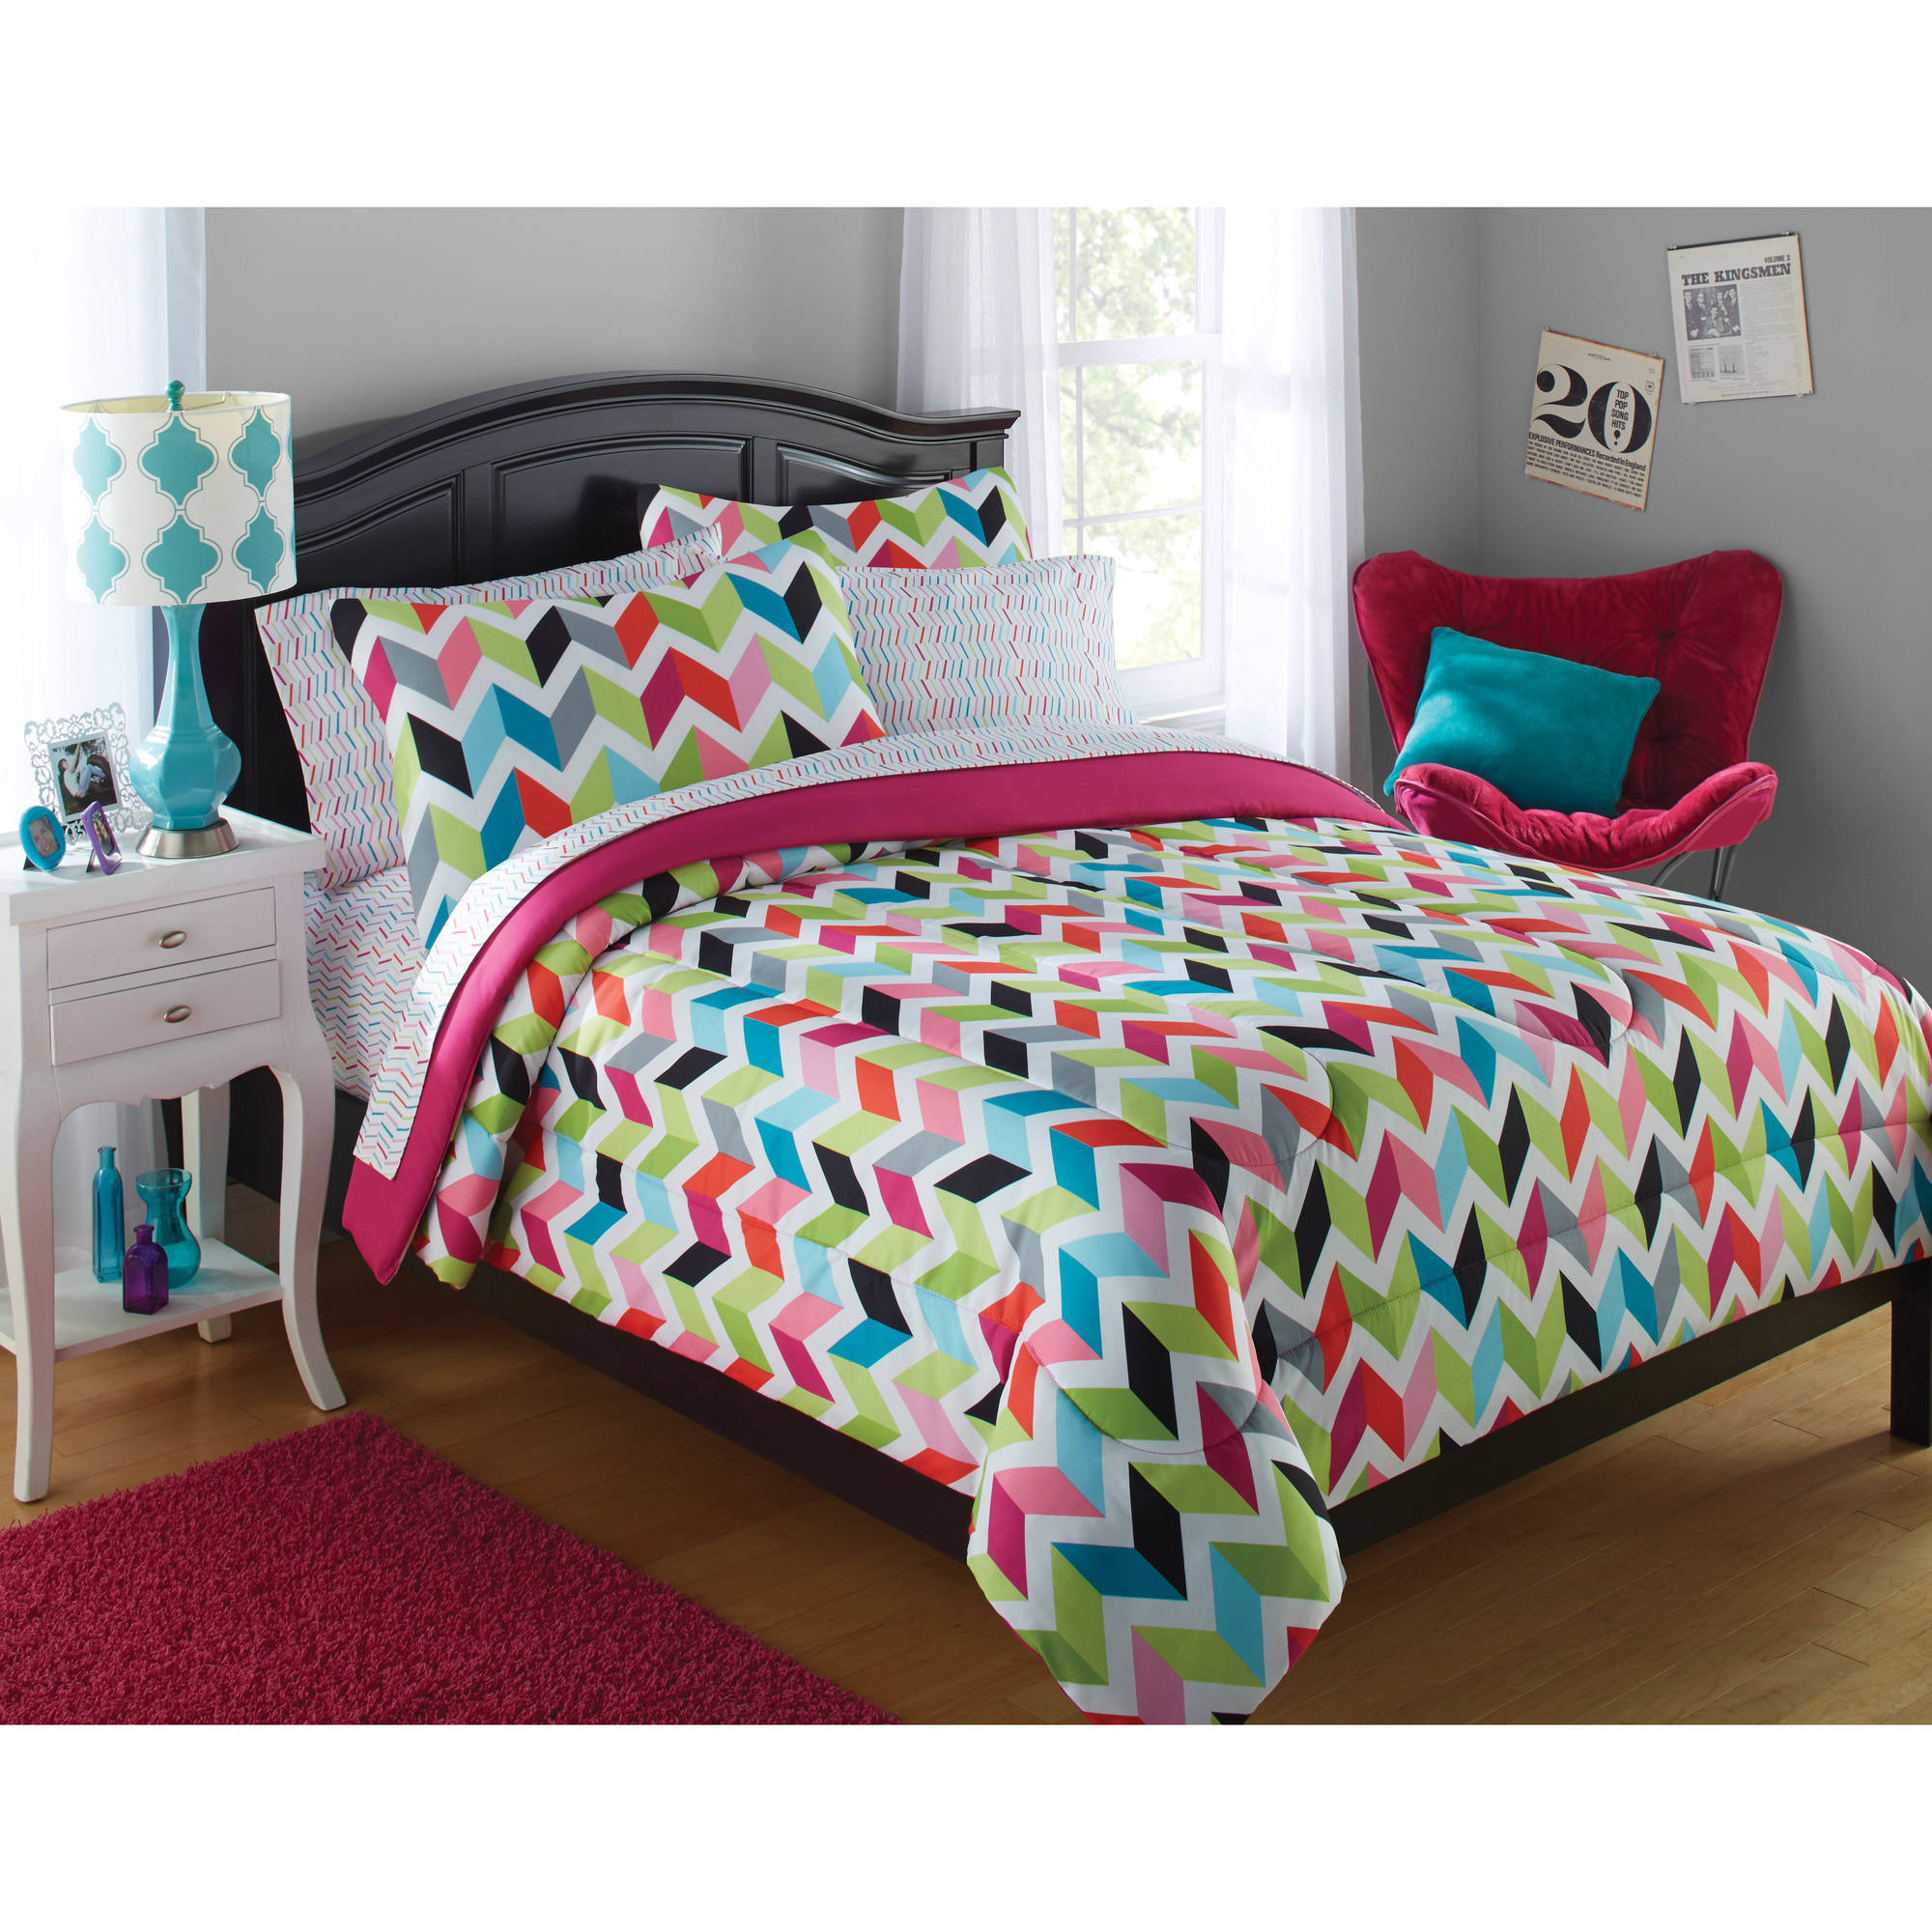 Polka Dot Reversible Bed In A Bag Bedding Set Bedding Designs